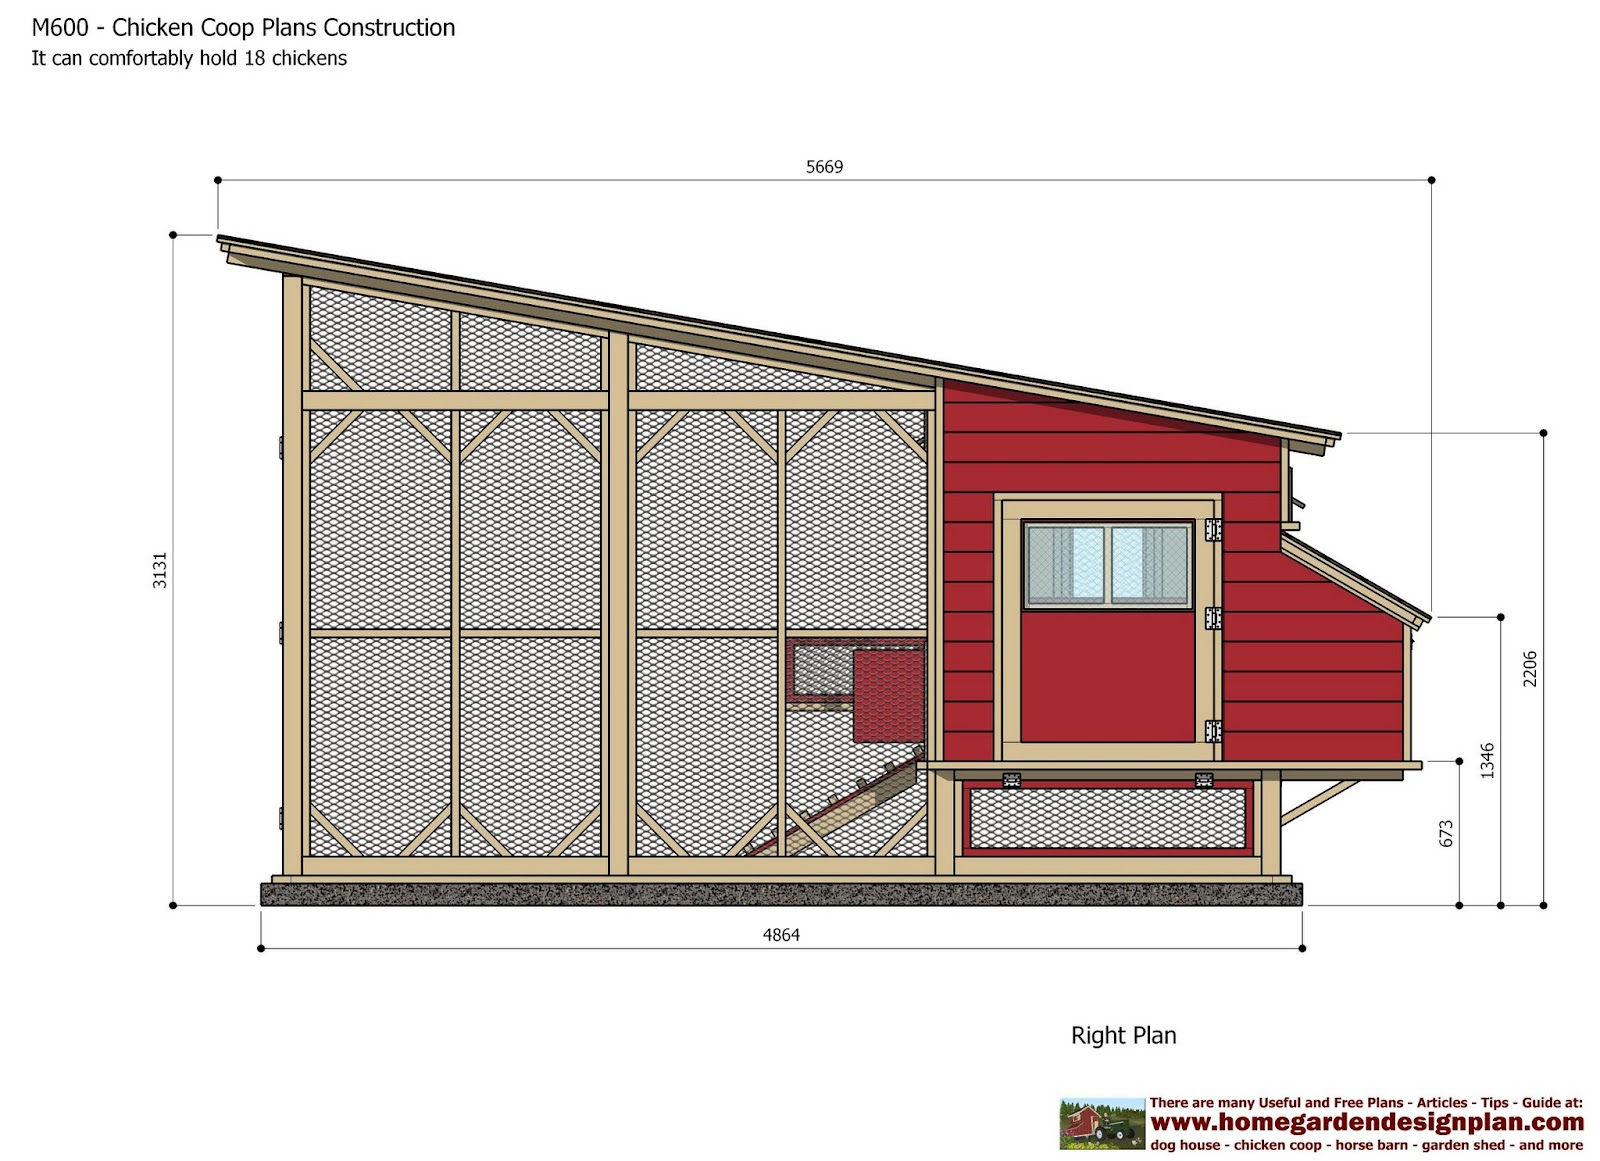 Home garden plans m600 chicken coop plans construction for Build a home online free